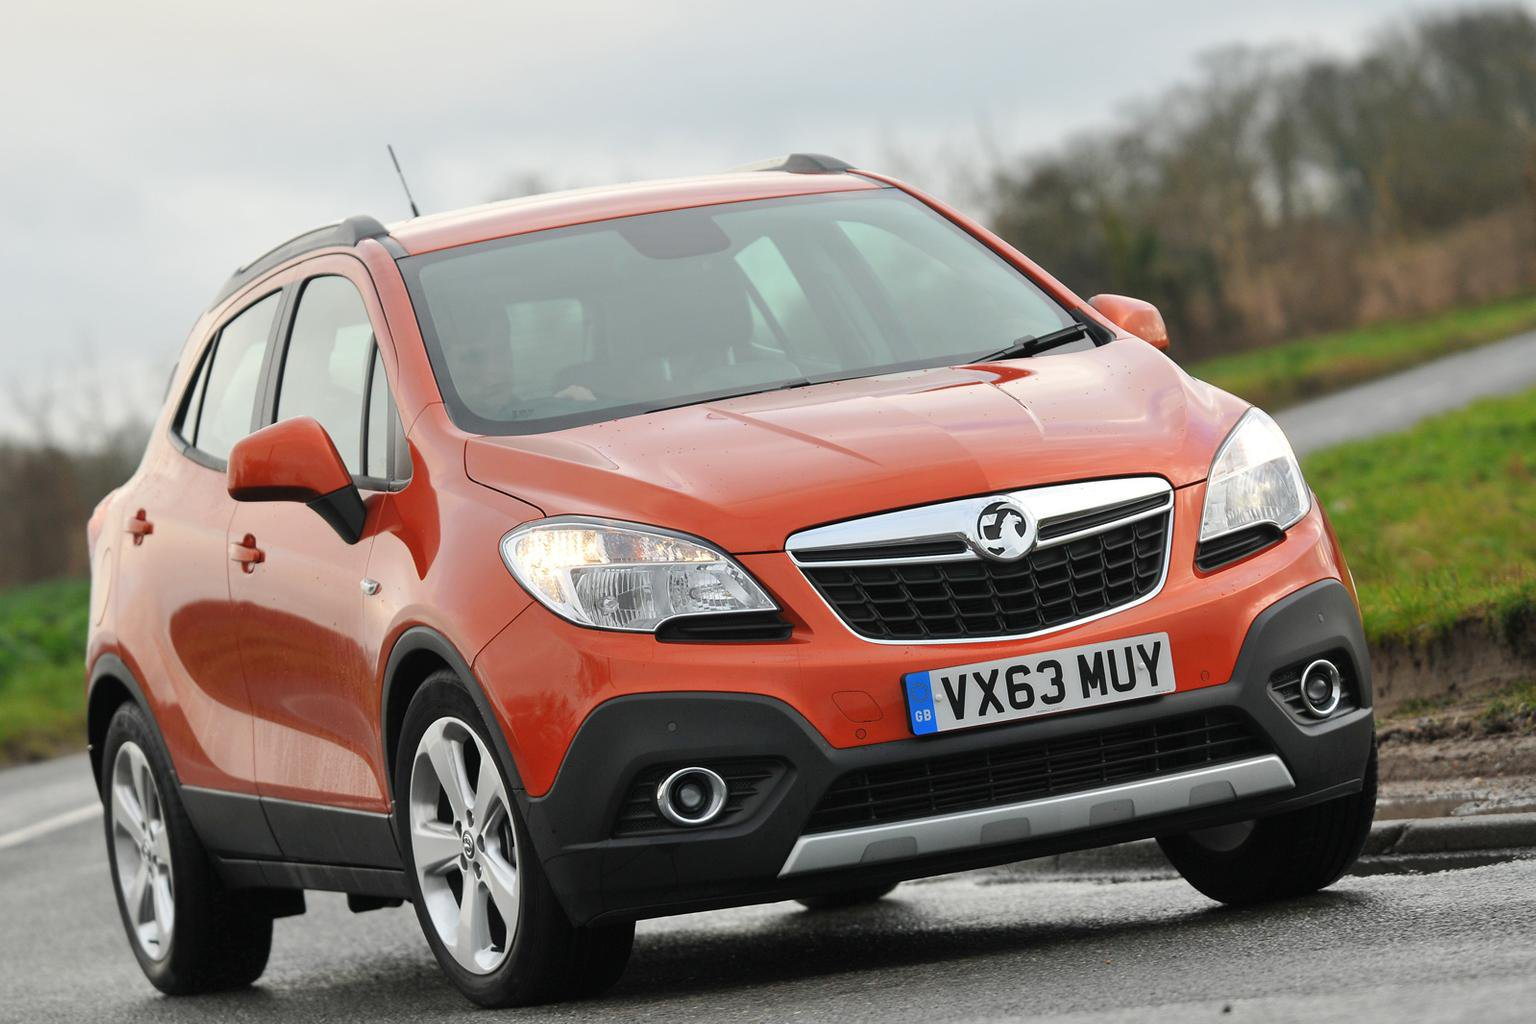 2014 Vauxhall Mokka 1.4T 2WD review